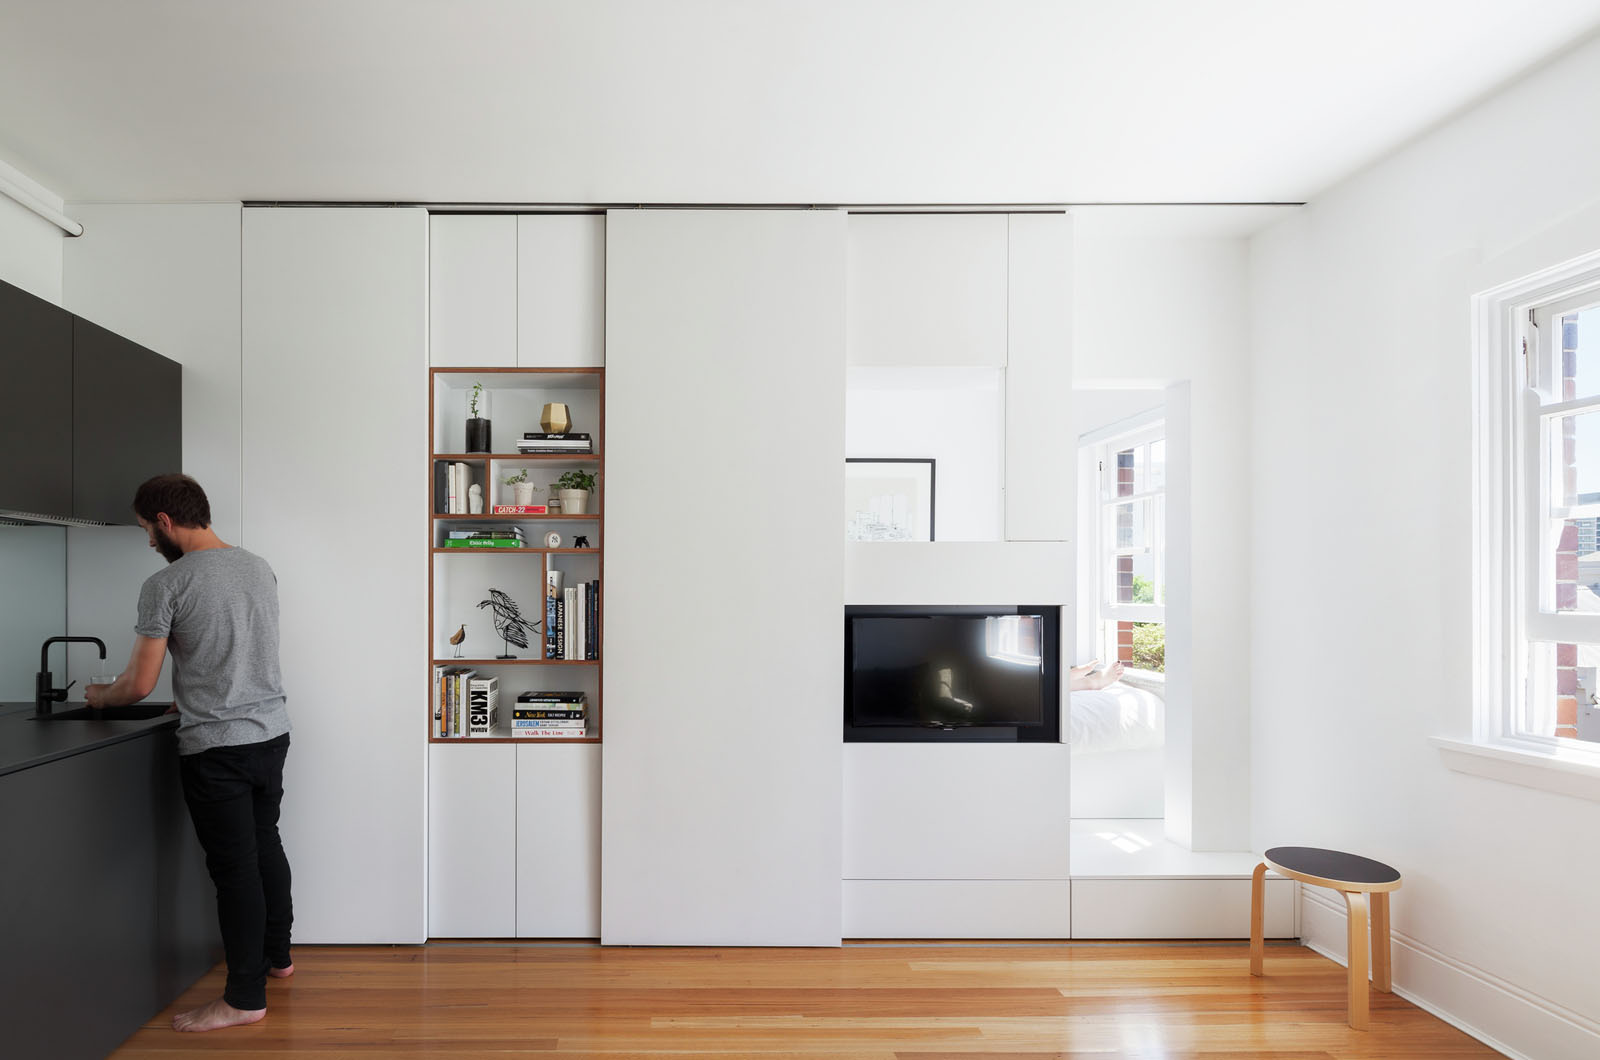 Micro Studio Apartments Minimalist Inner City Micro Apartment With Smart